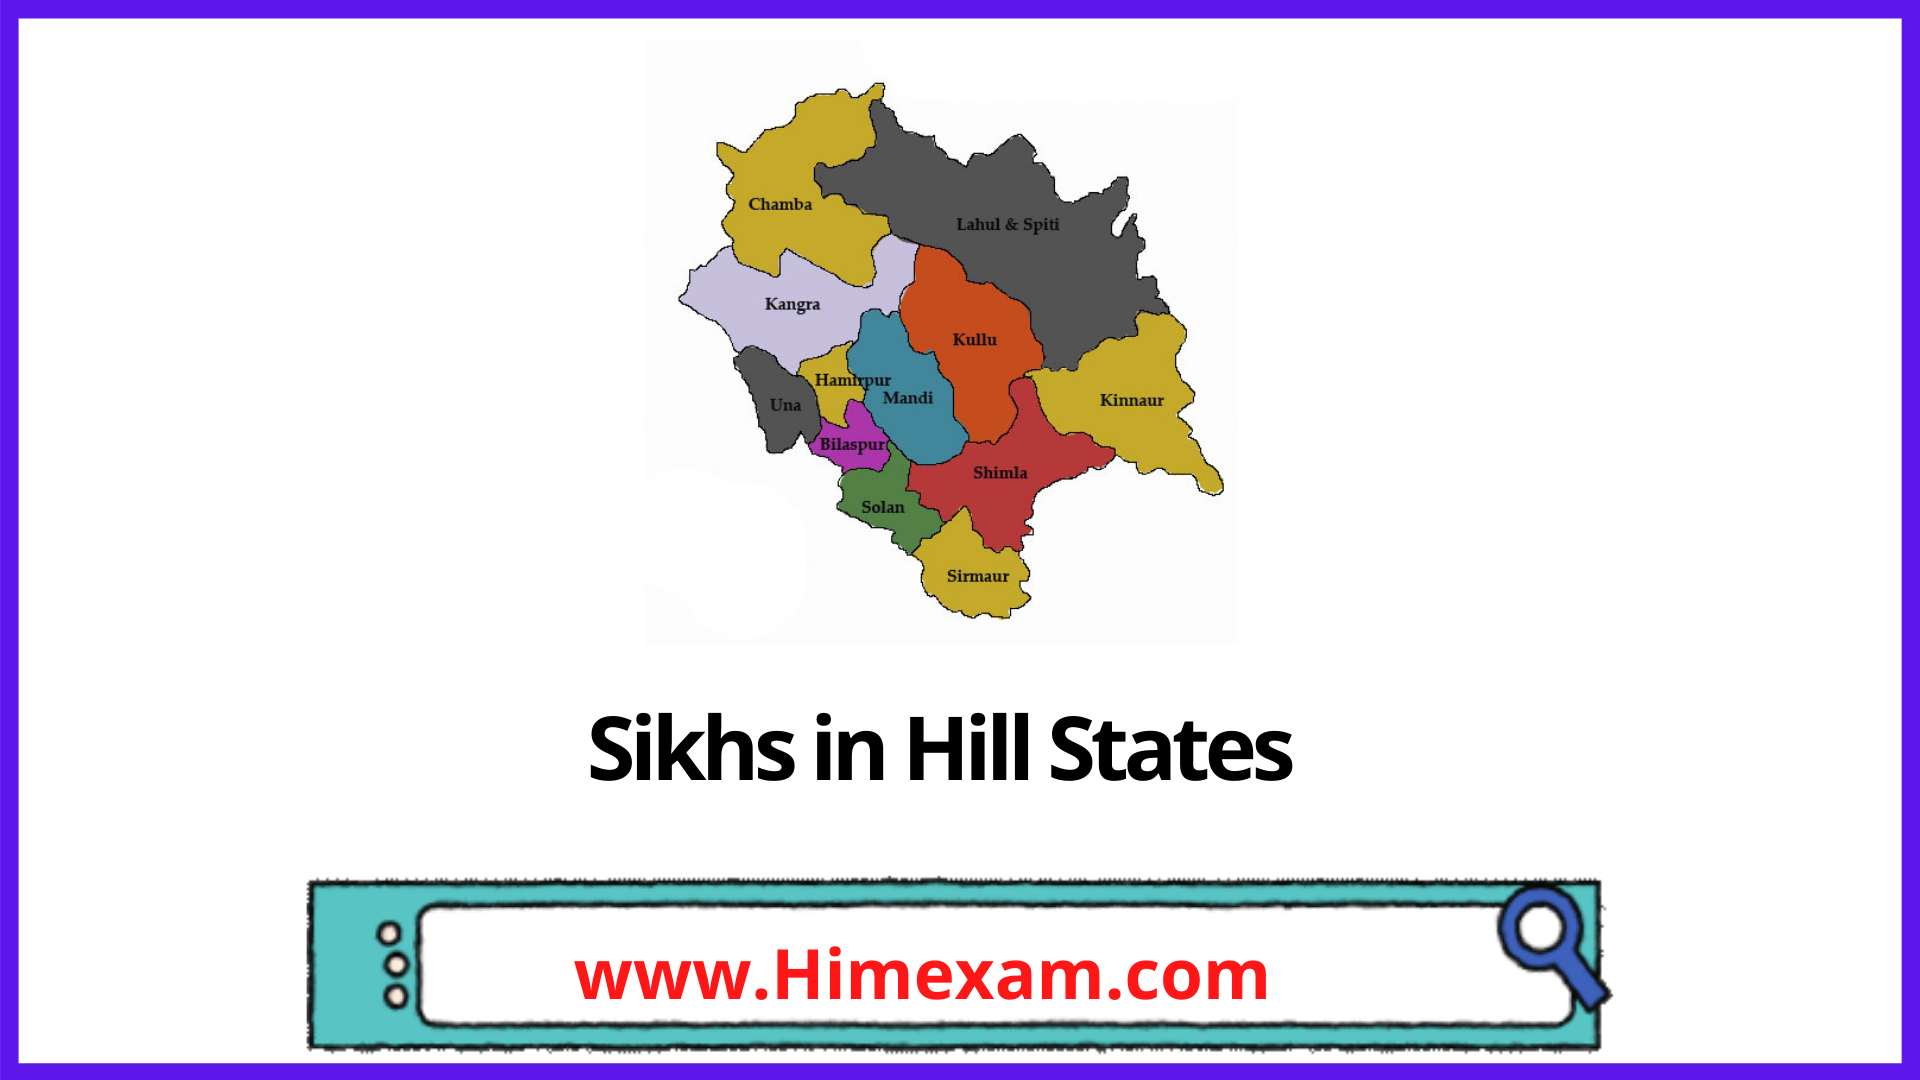 Sikhs in Hill States